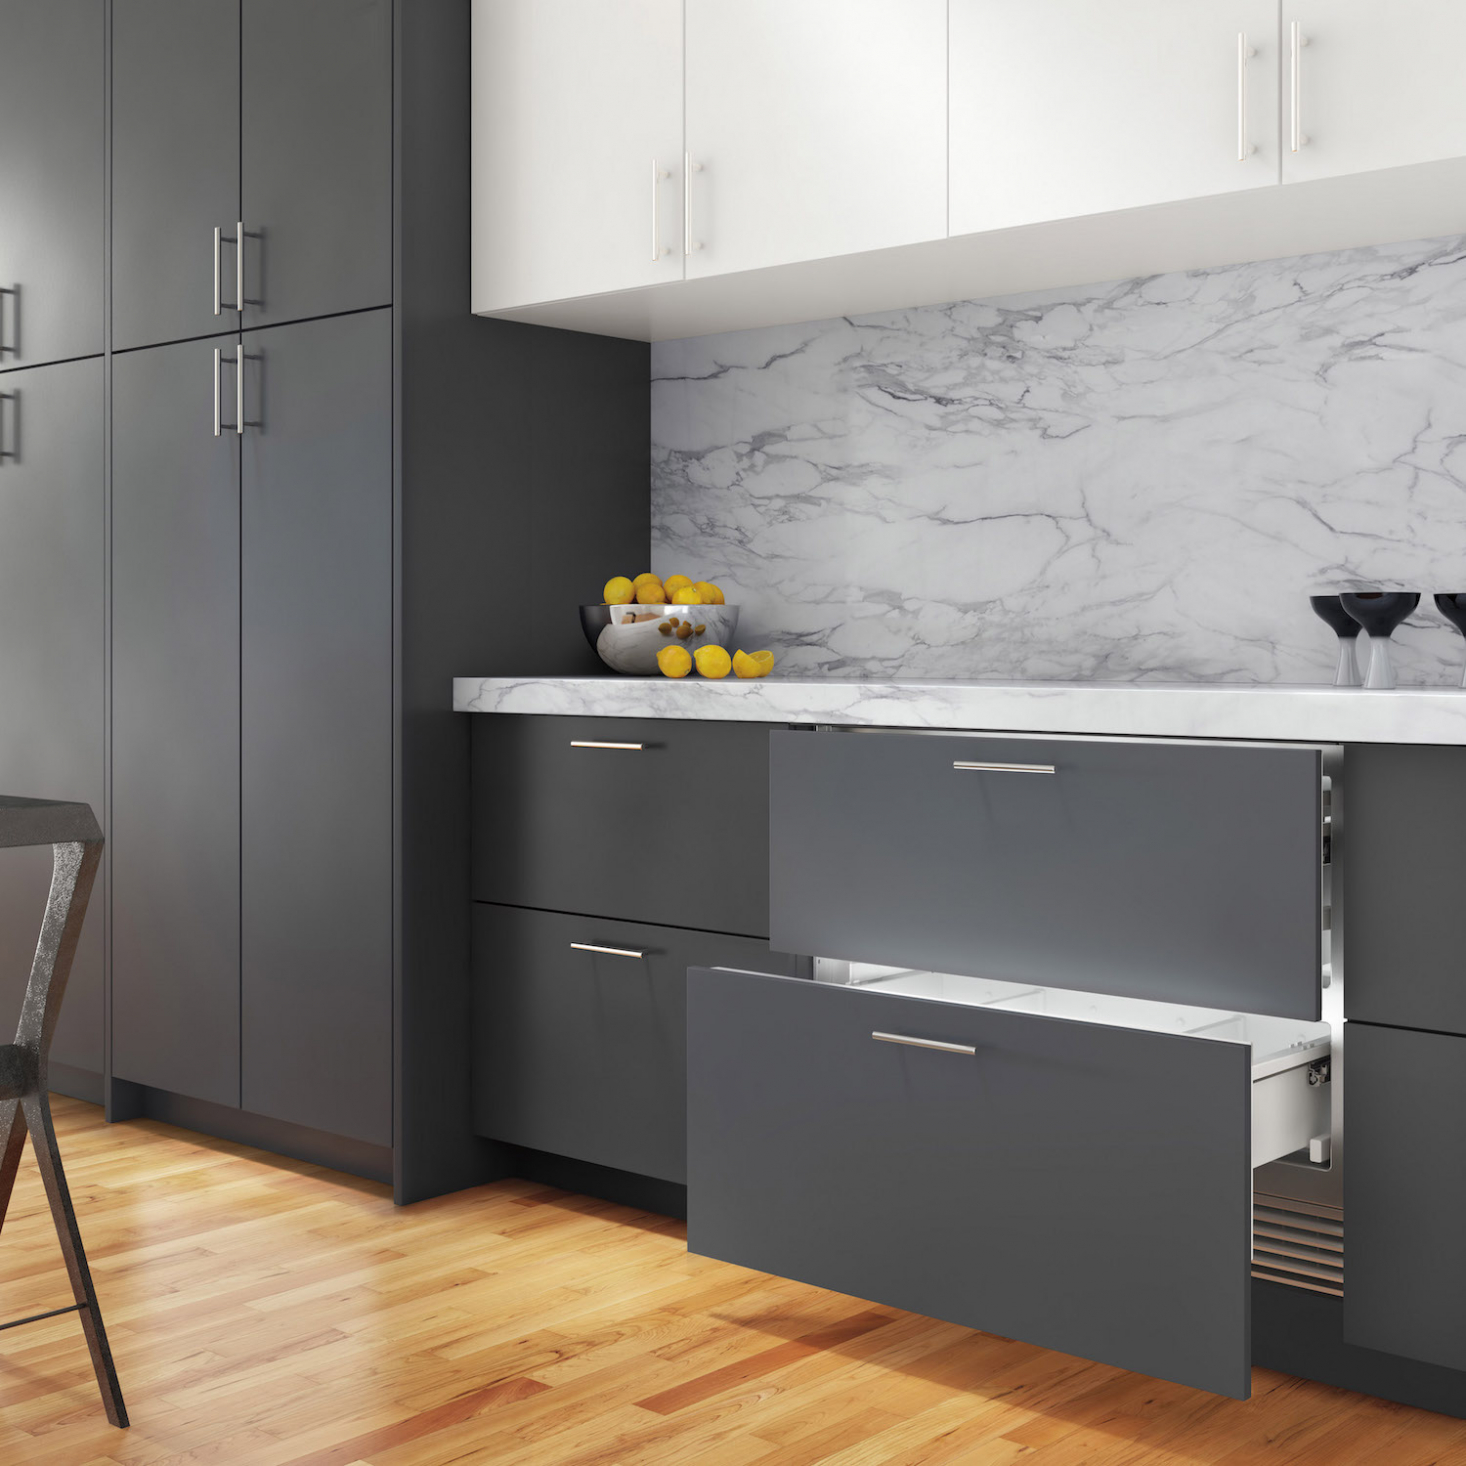 10 Easy Pieces: Choosing An Undercounter Refrigerator